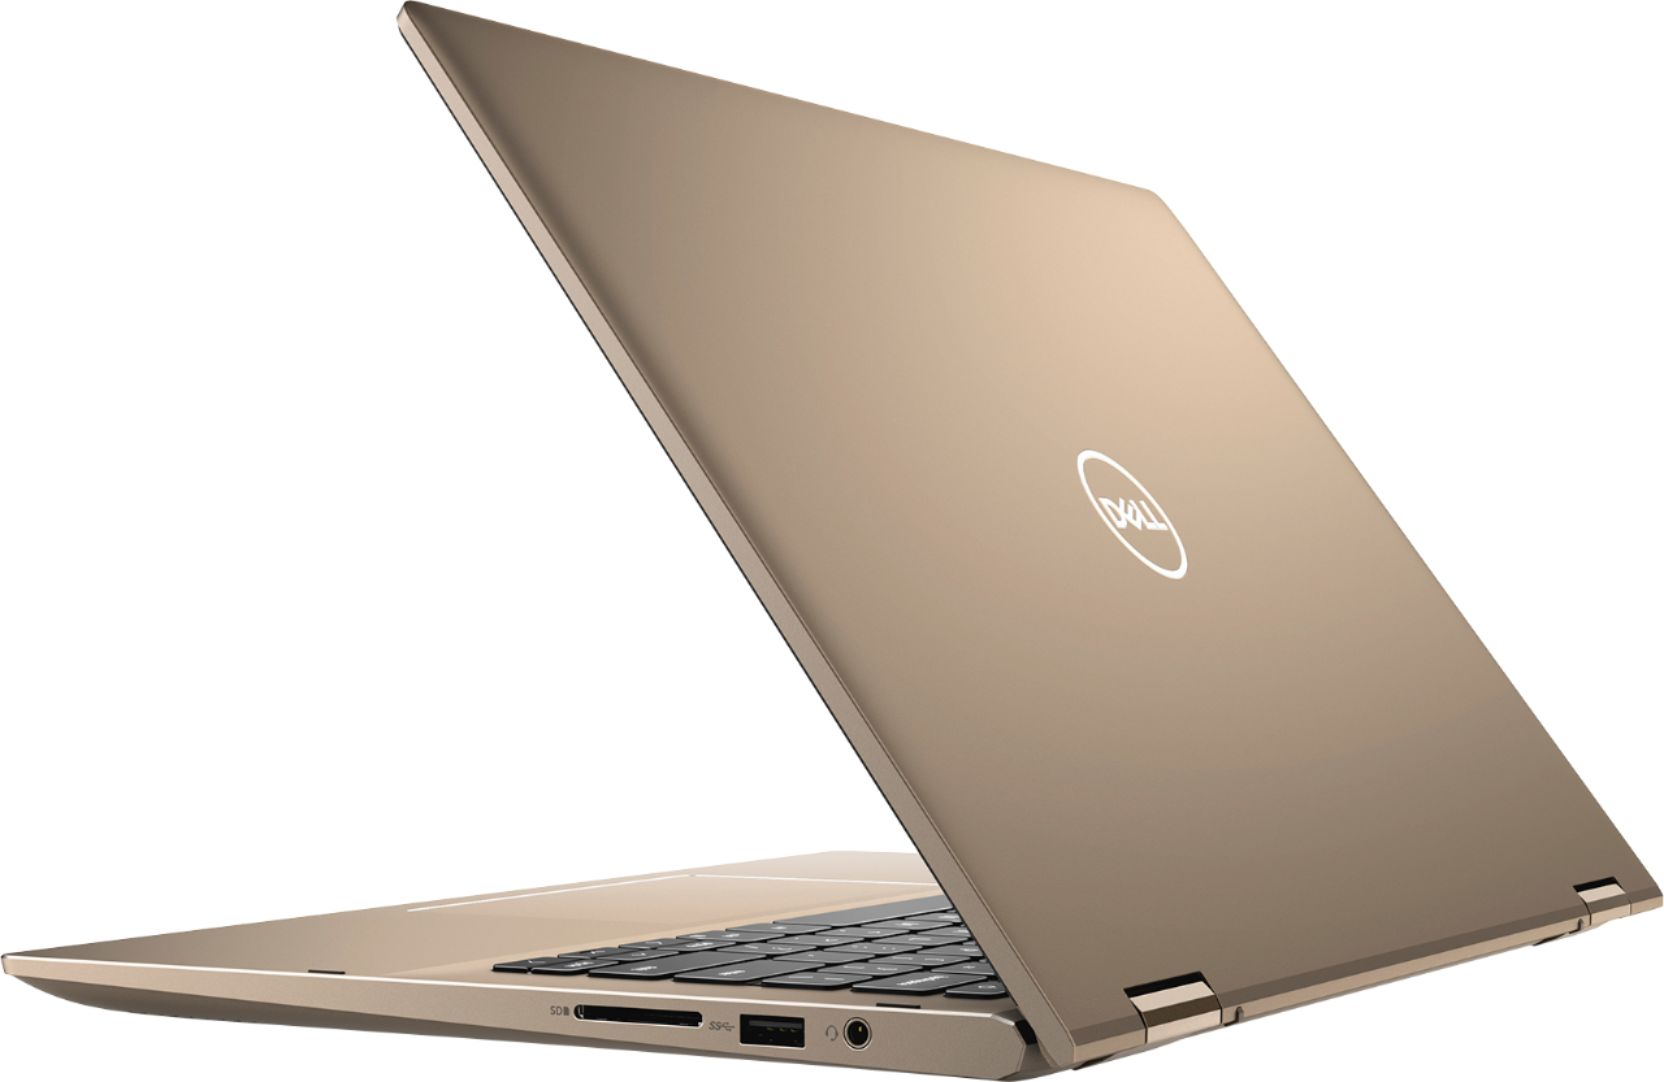 "Alt View Zoom 3. Dell - Inspiron 14 7000 2-in-1 - 14"" Touch Screen Laptop - AMD Ryzen 5 - 8GB Memory - 256GB SSD - Sandstorm."